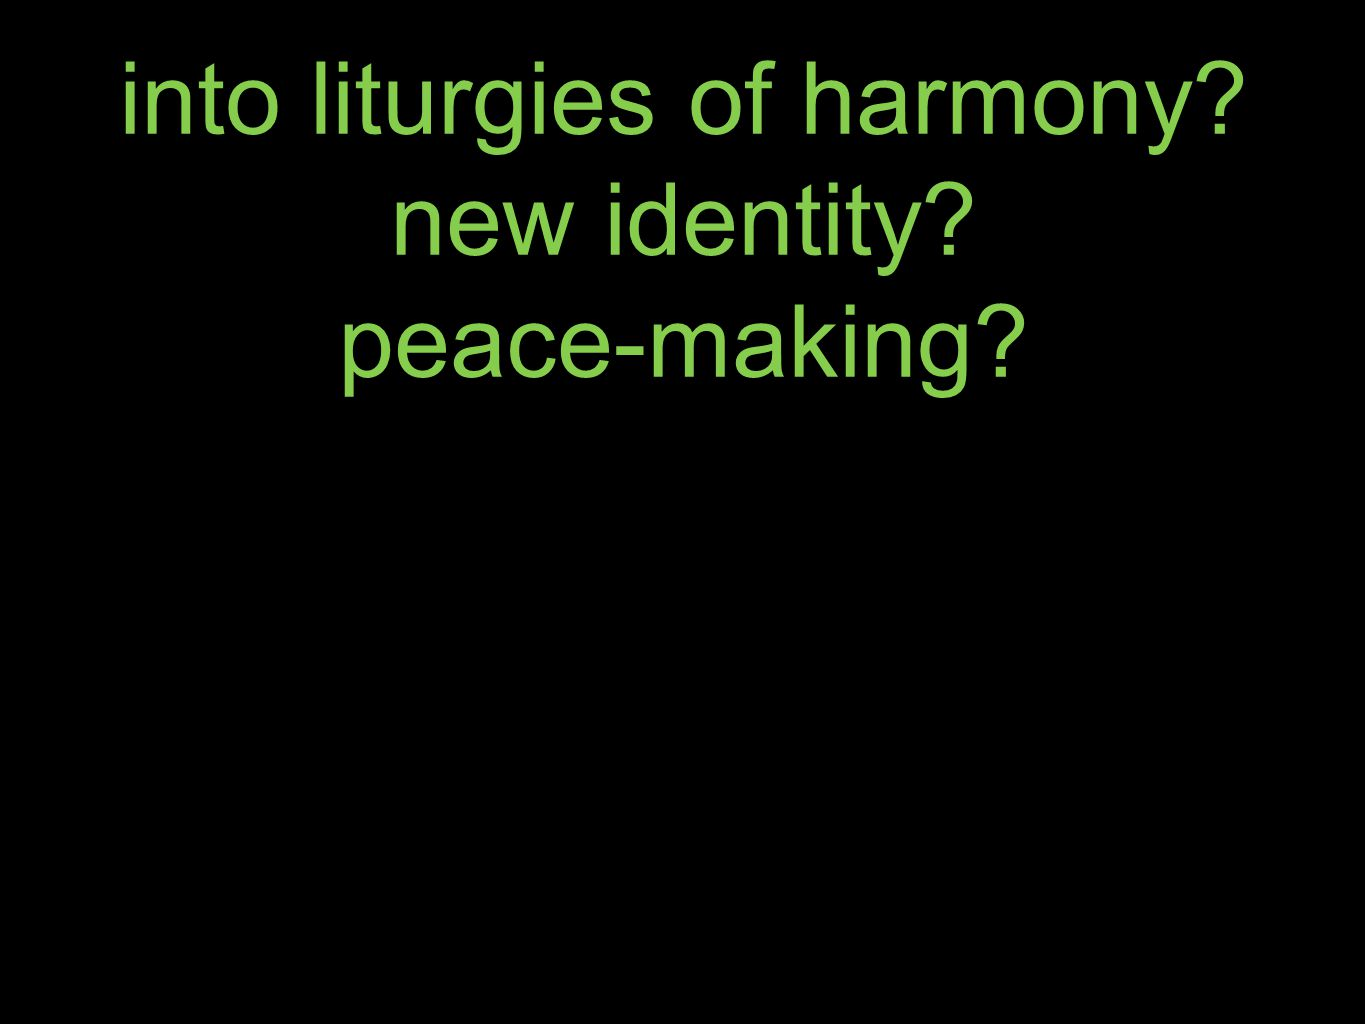 into liturgies of harmony new identity peace-making